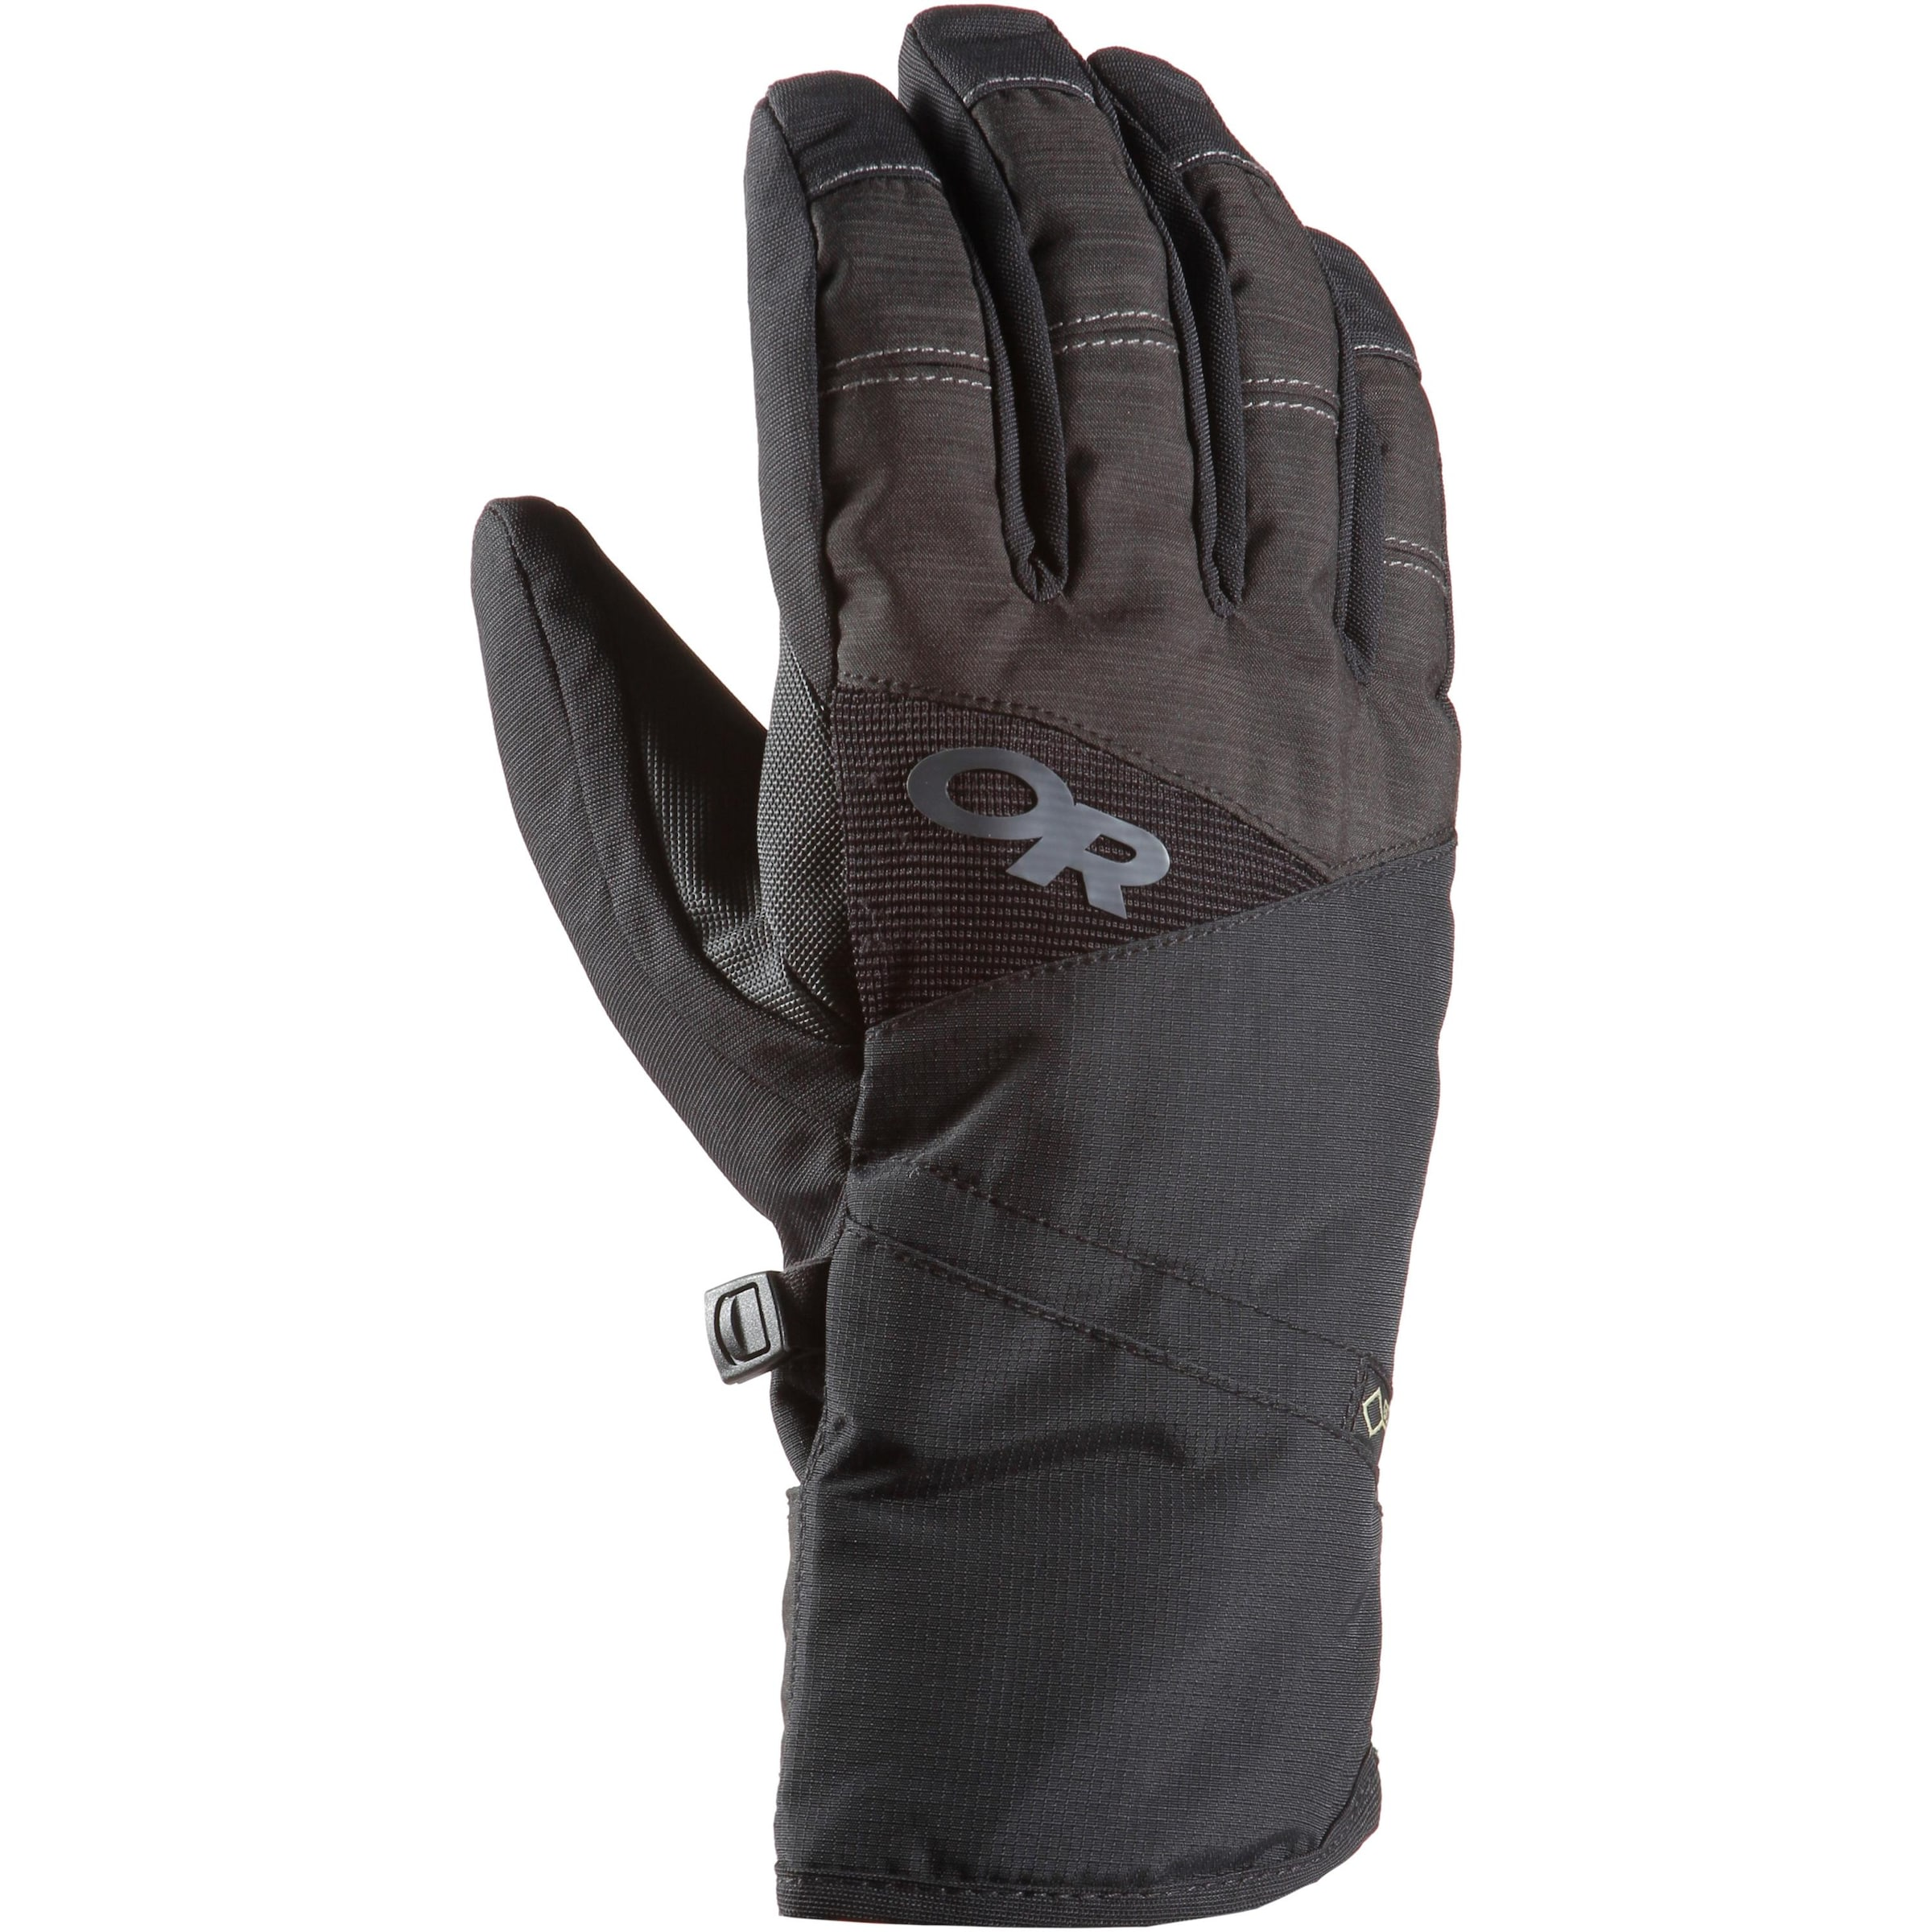 In Outdoor Research Outdoorhandschuhe Schwarz Gloves' 'centurion KT1Jc5ulF3